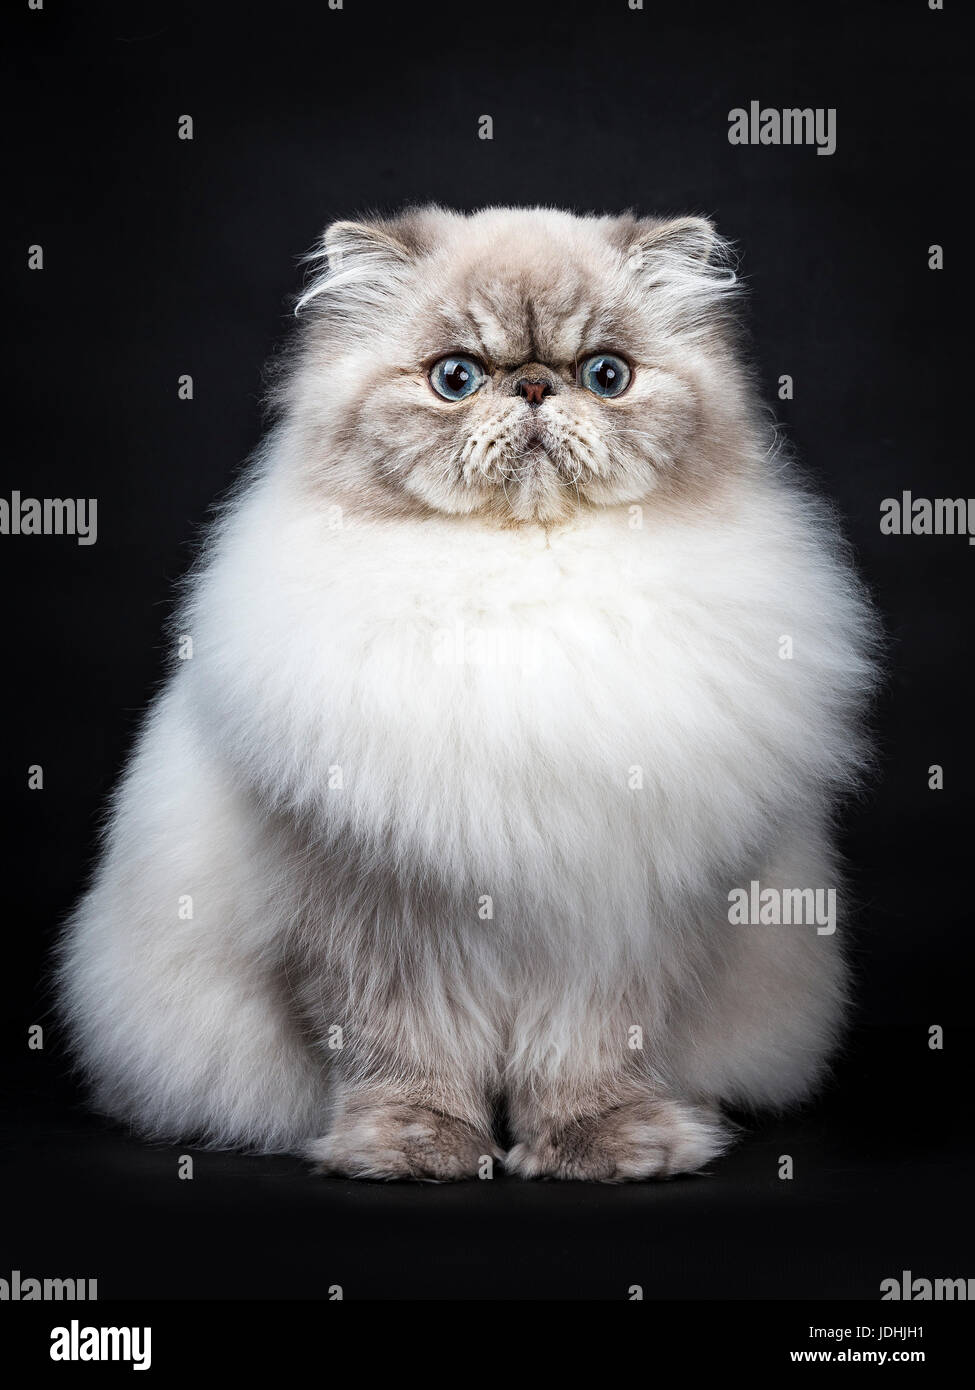 Tabby point Persian cat sitting isolated on black background - Stock Image